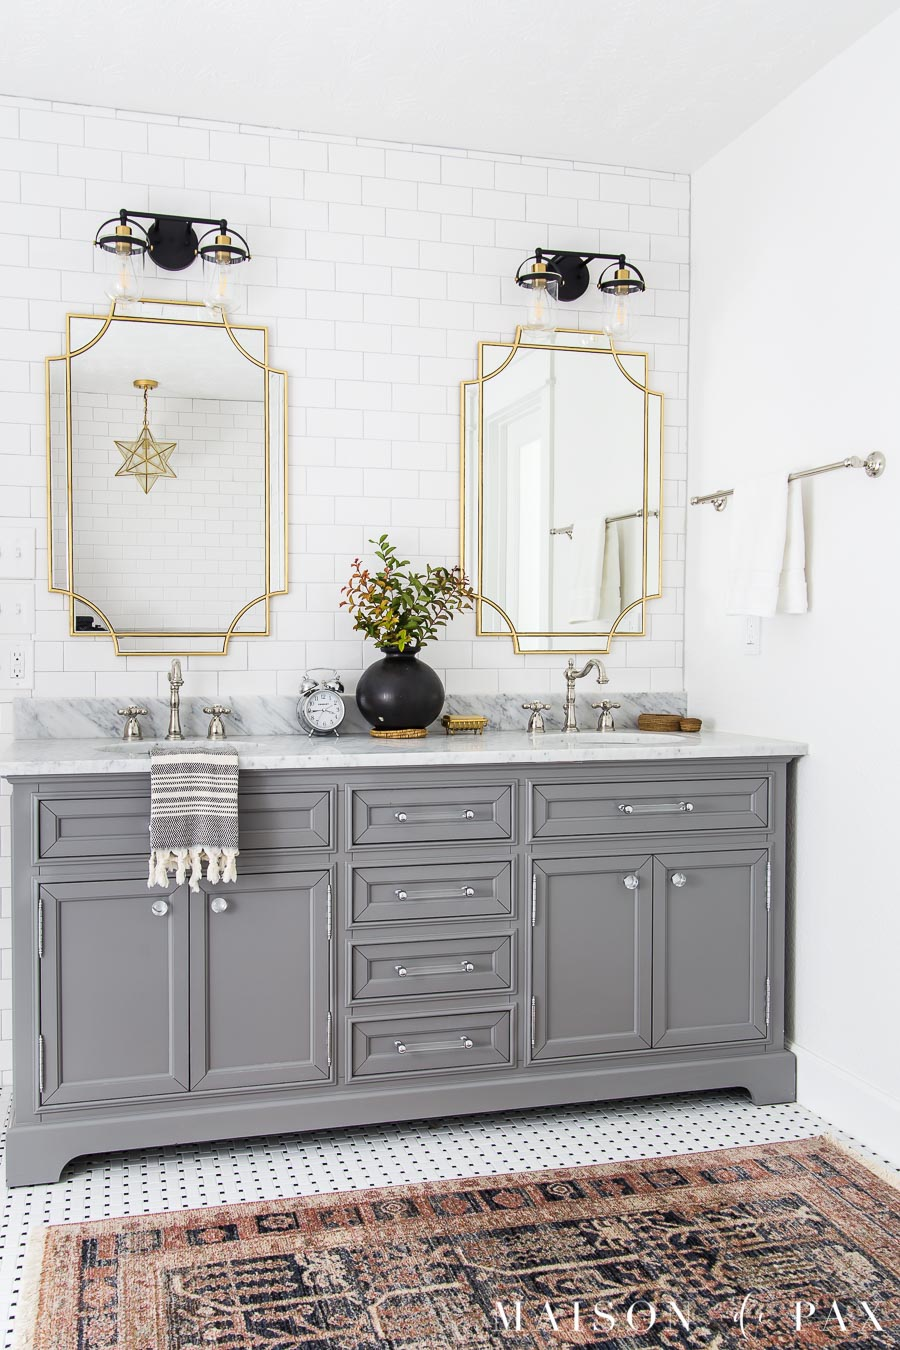 gray vanity in white tiled bathroom with polished nickel accessories and gold light fixtures